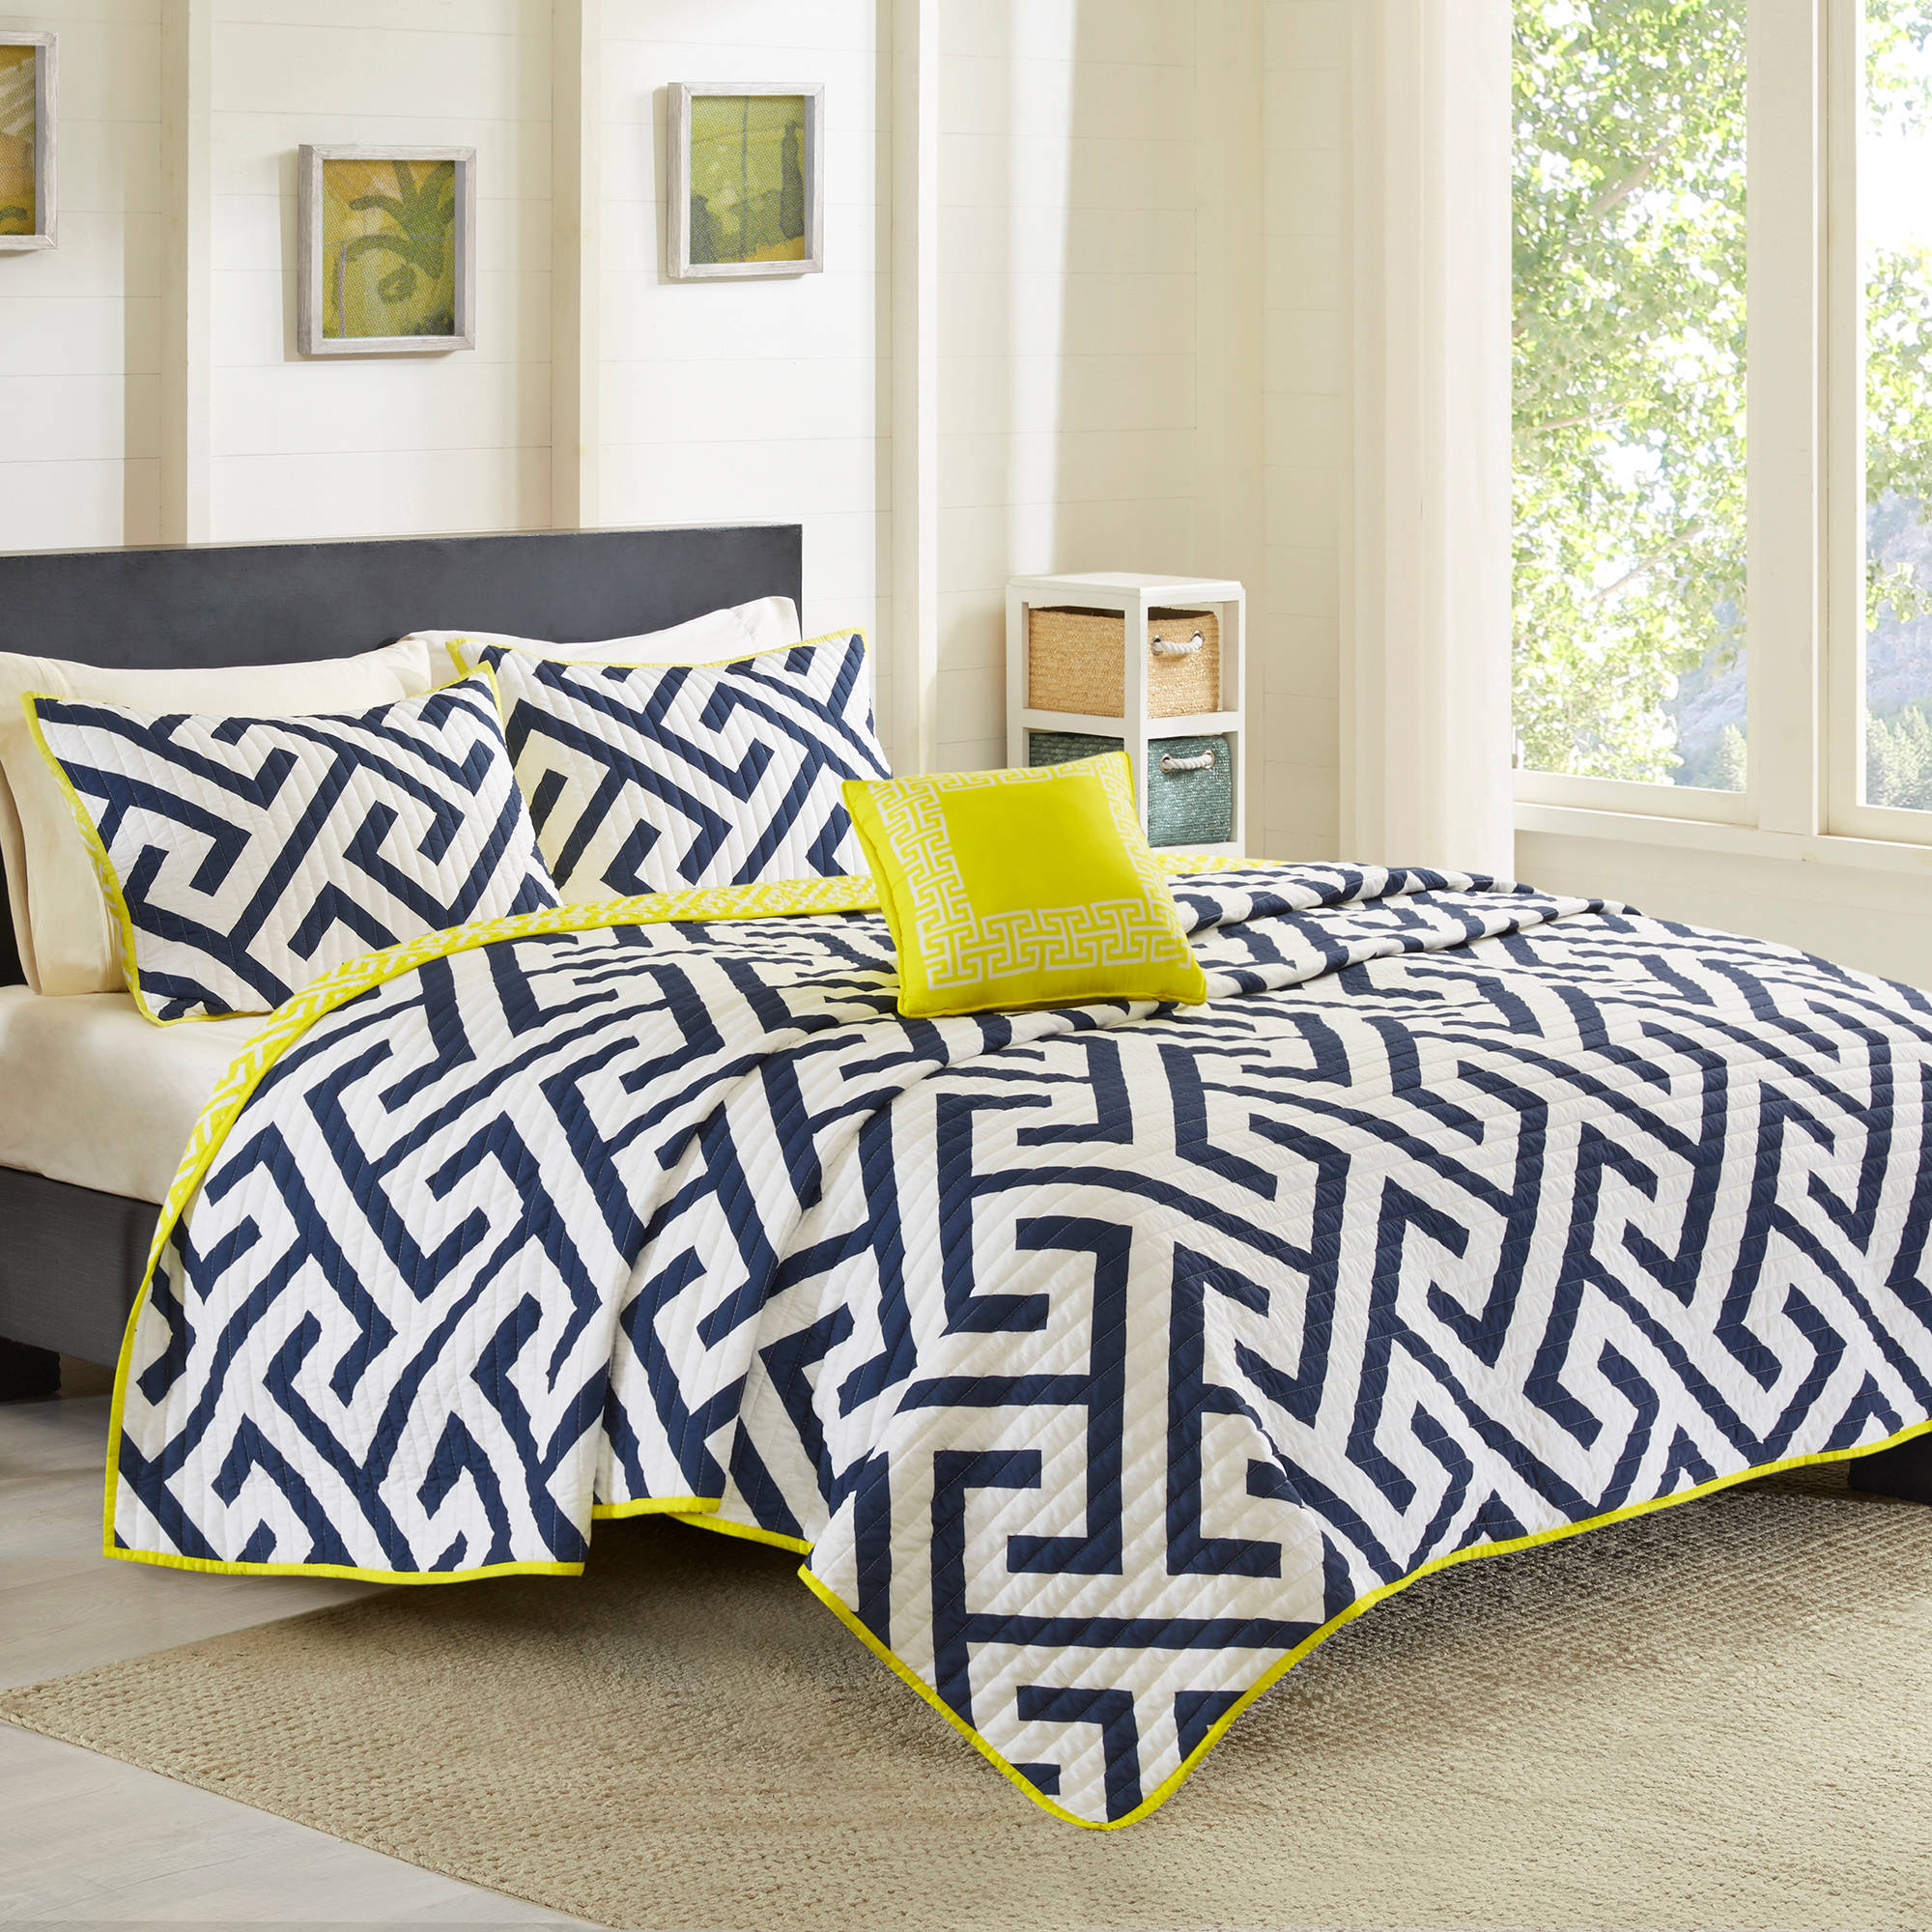 Better Homes and Gardens Greek Key Quilt Set